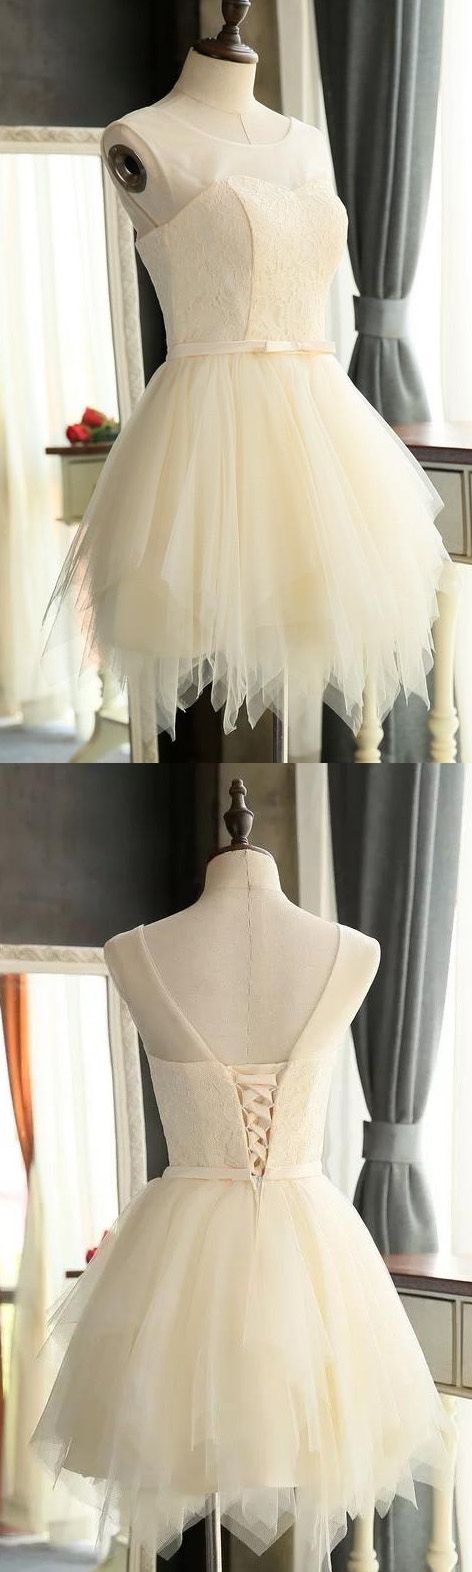 Round Party Dresses, White Party Dresses,Homecoming Dress Chic Lace-up Scoop Tulle Short Prom Dress Party Dress